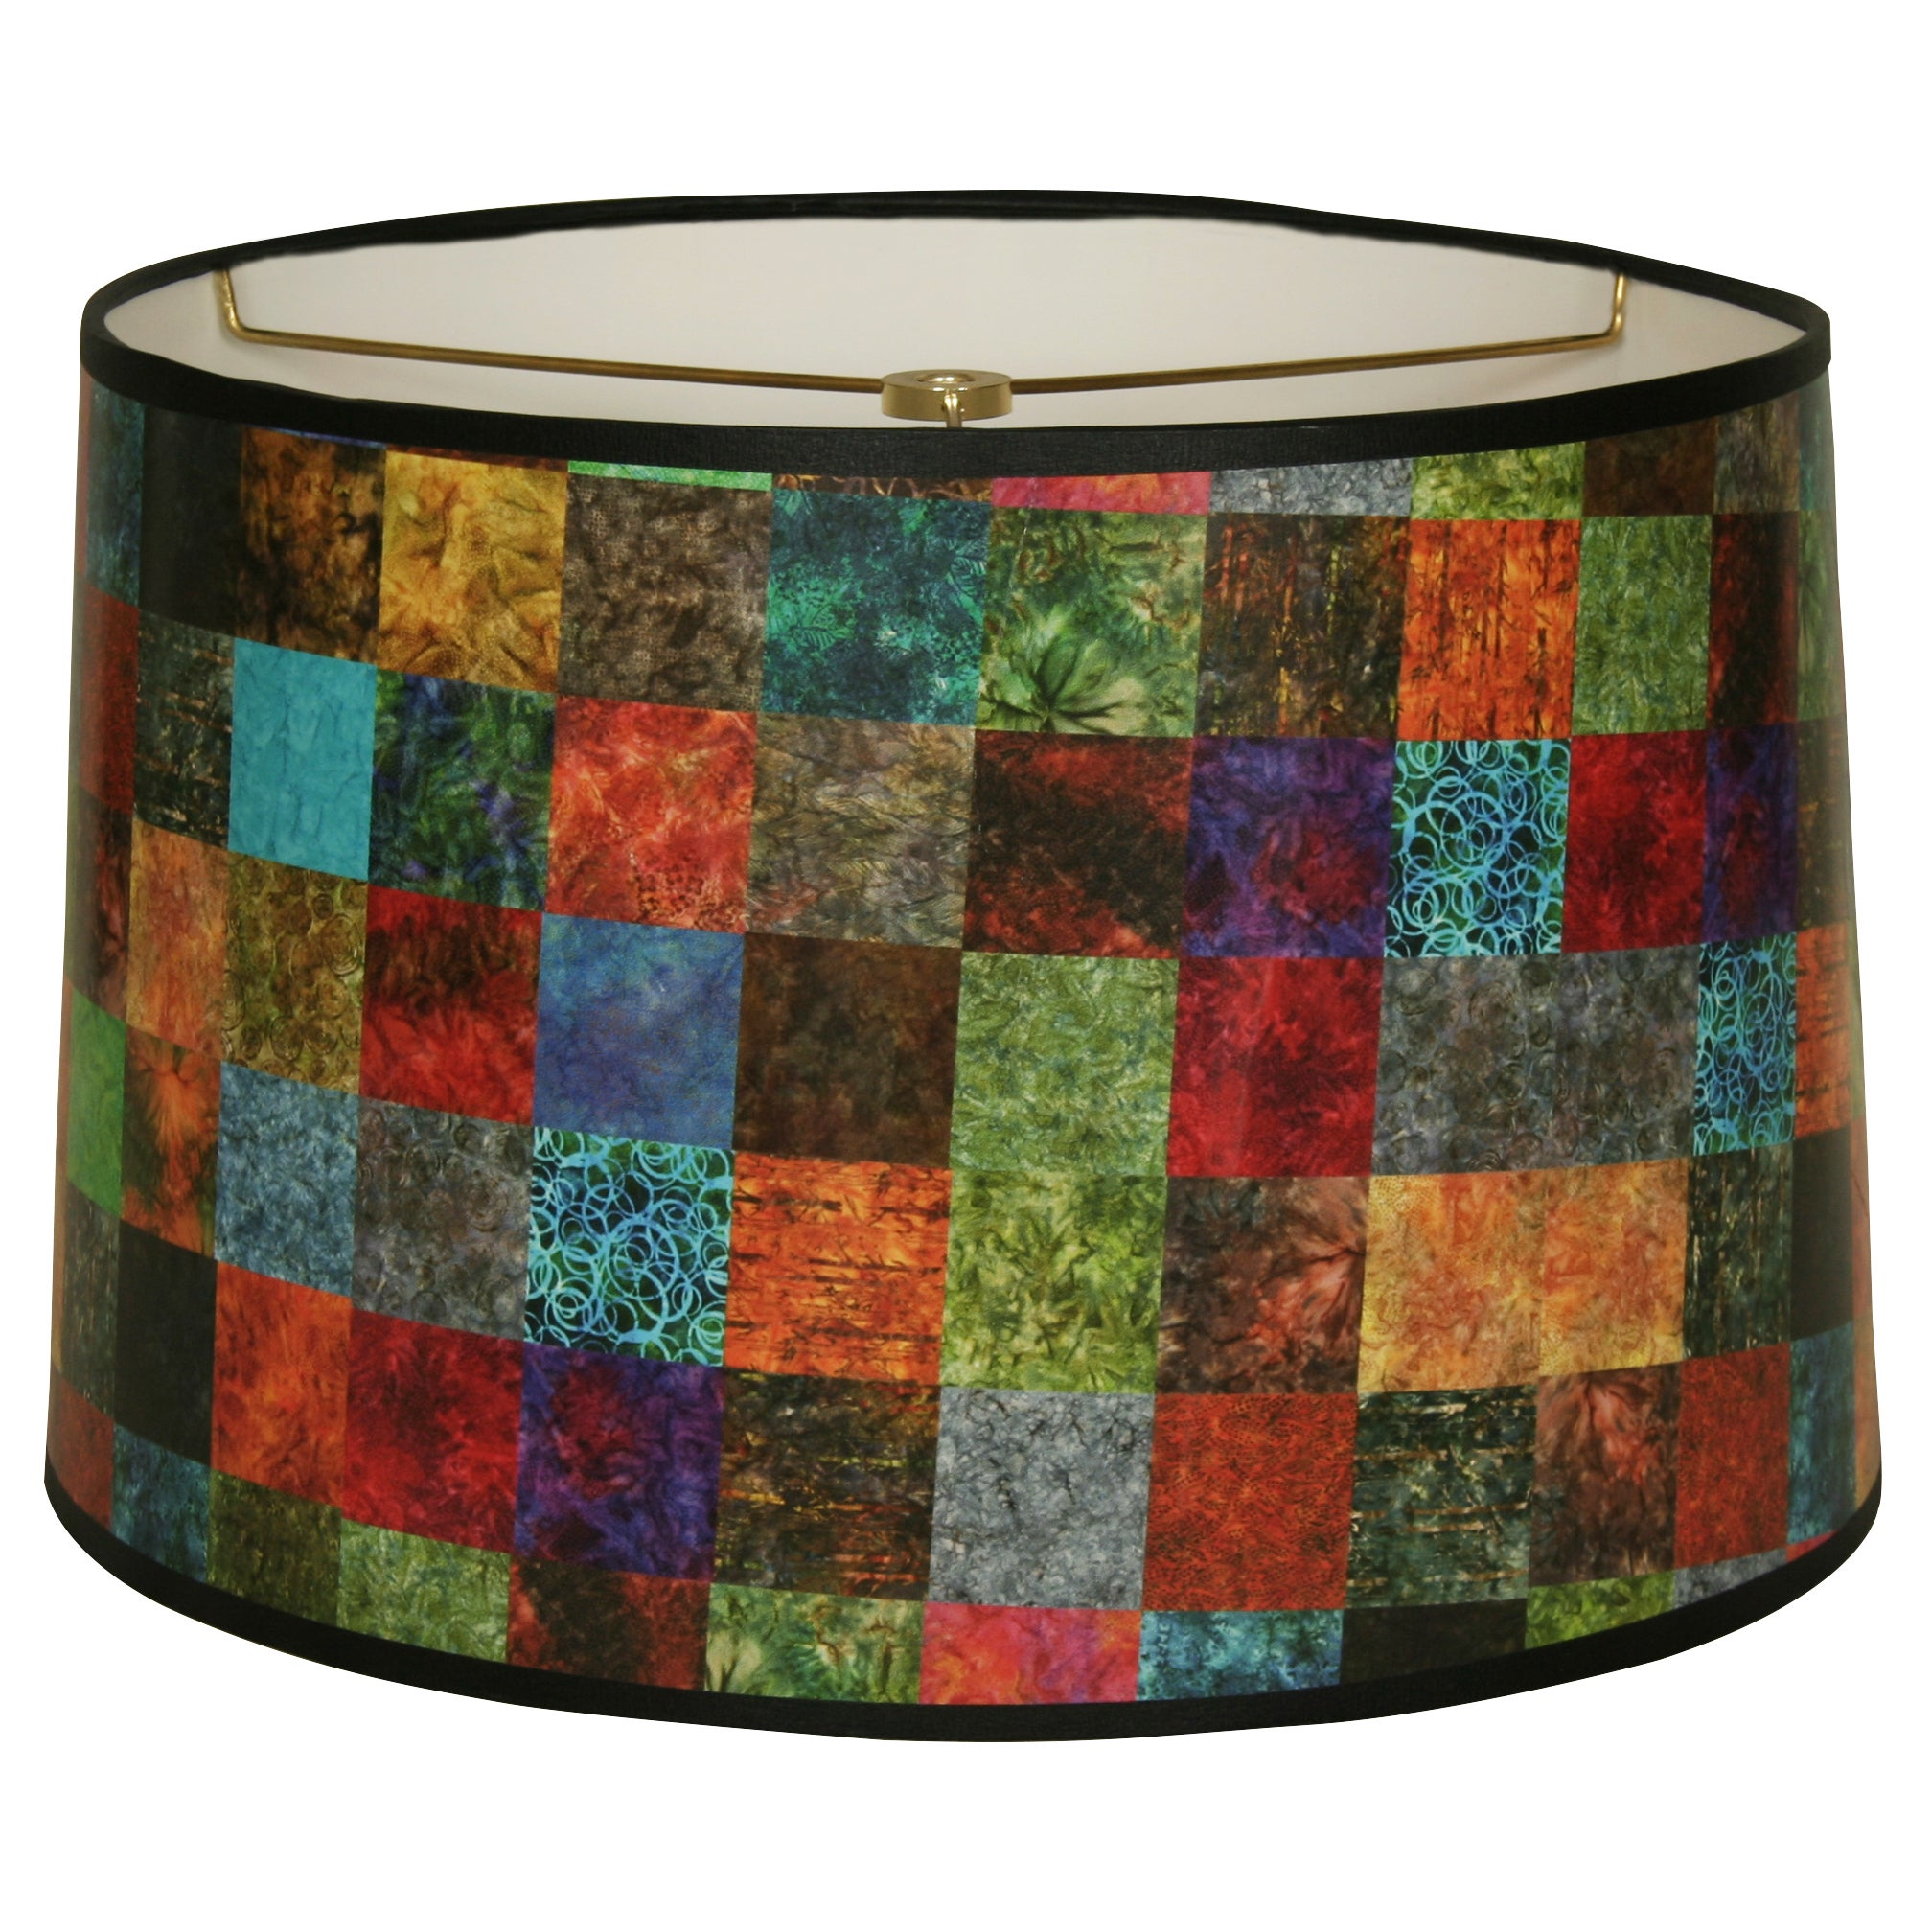 Royal Designs Colorful Square Patchwork Design10 X 10 X 8 Inch Modern Trendy Decorative Handmade Lamp Shade On Sale Overstock 14953771